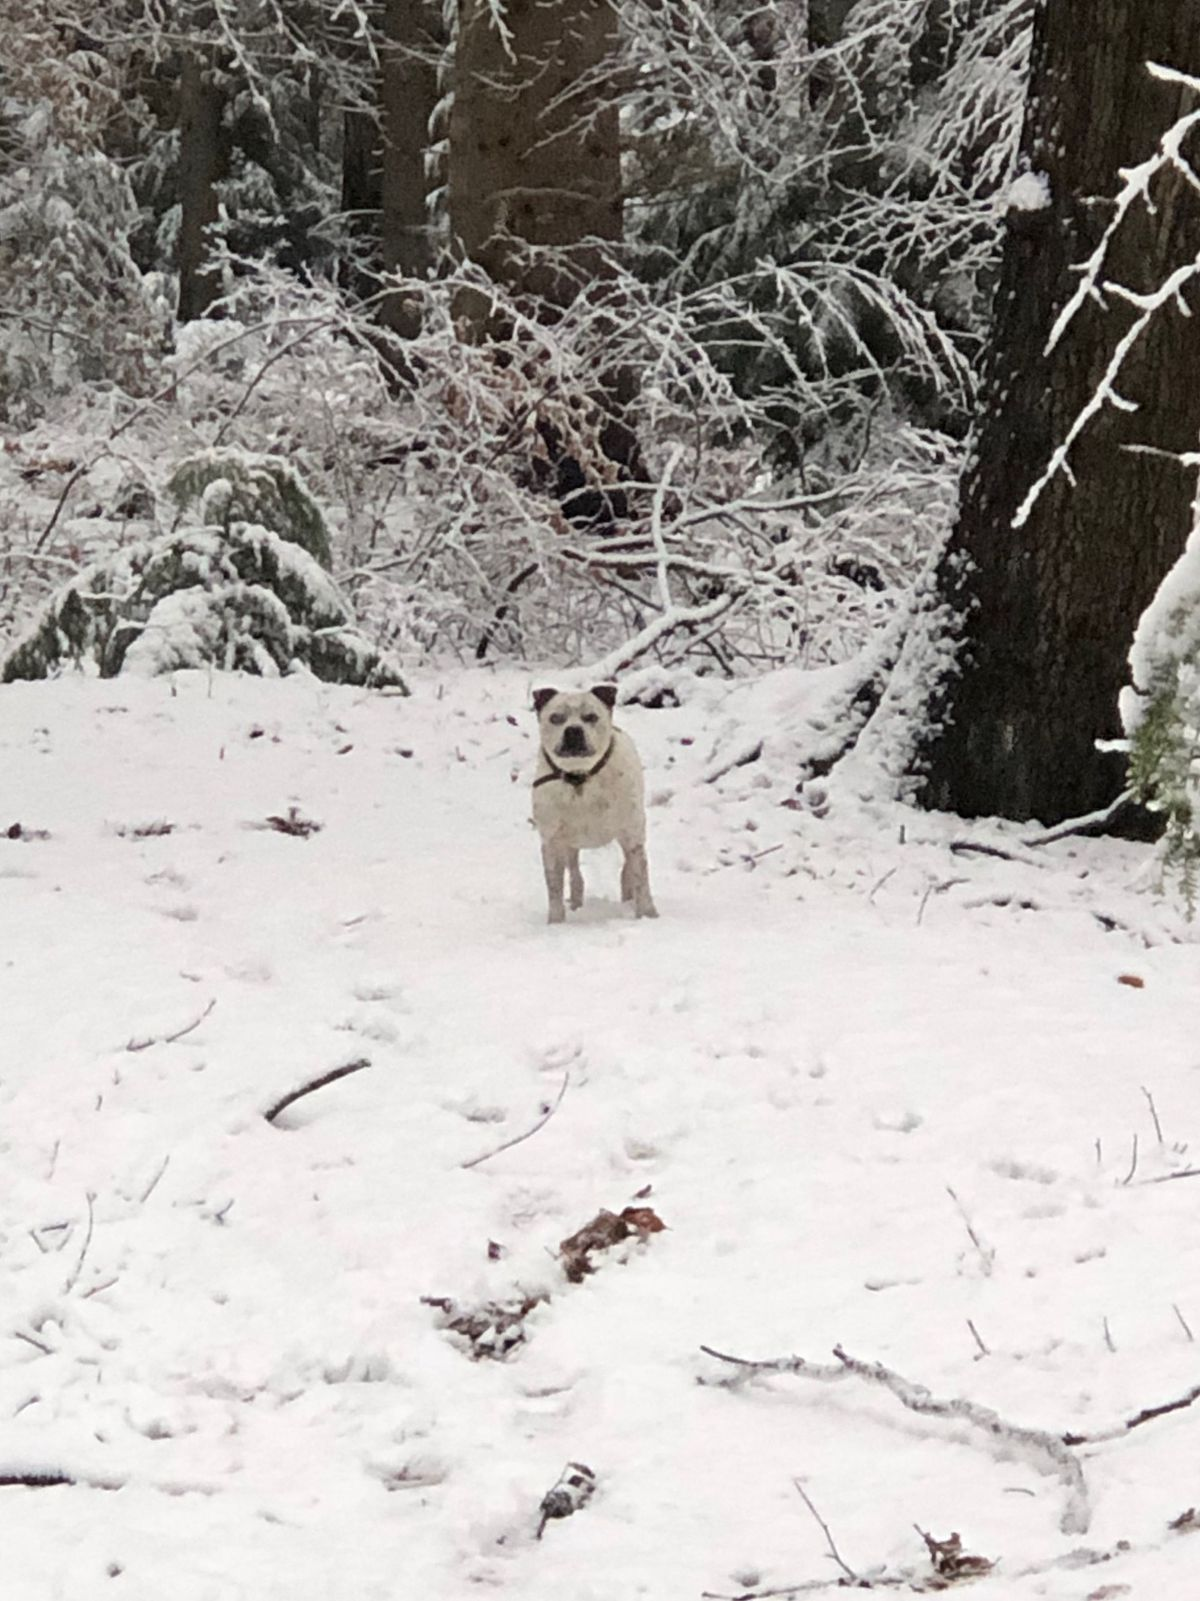 The Wyre Forest at Button Oak in Bewdley is a wonderland of white for dogs and humans to enjoy